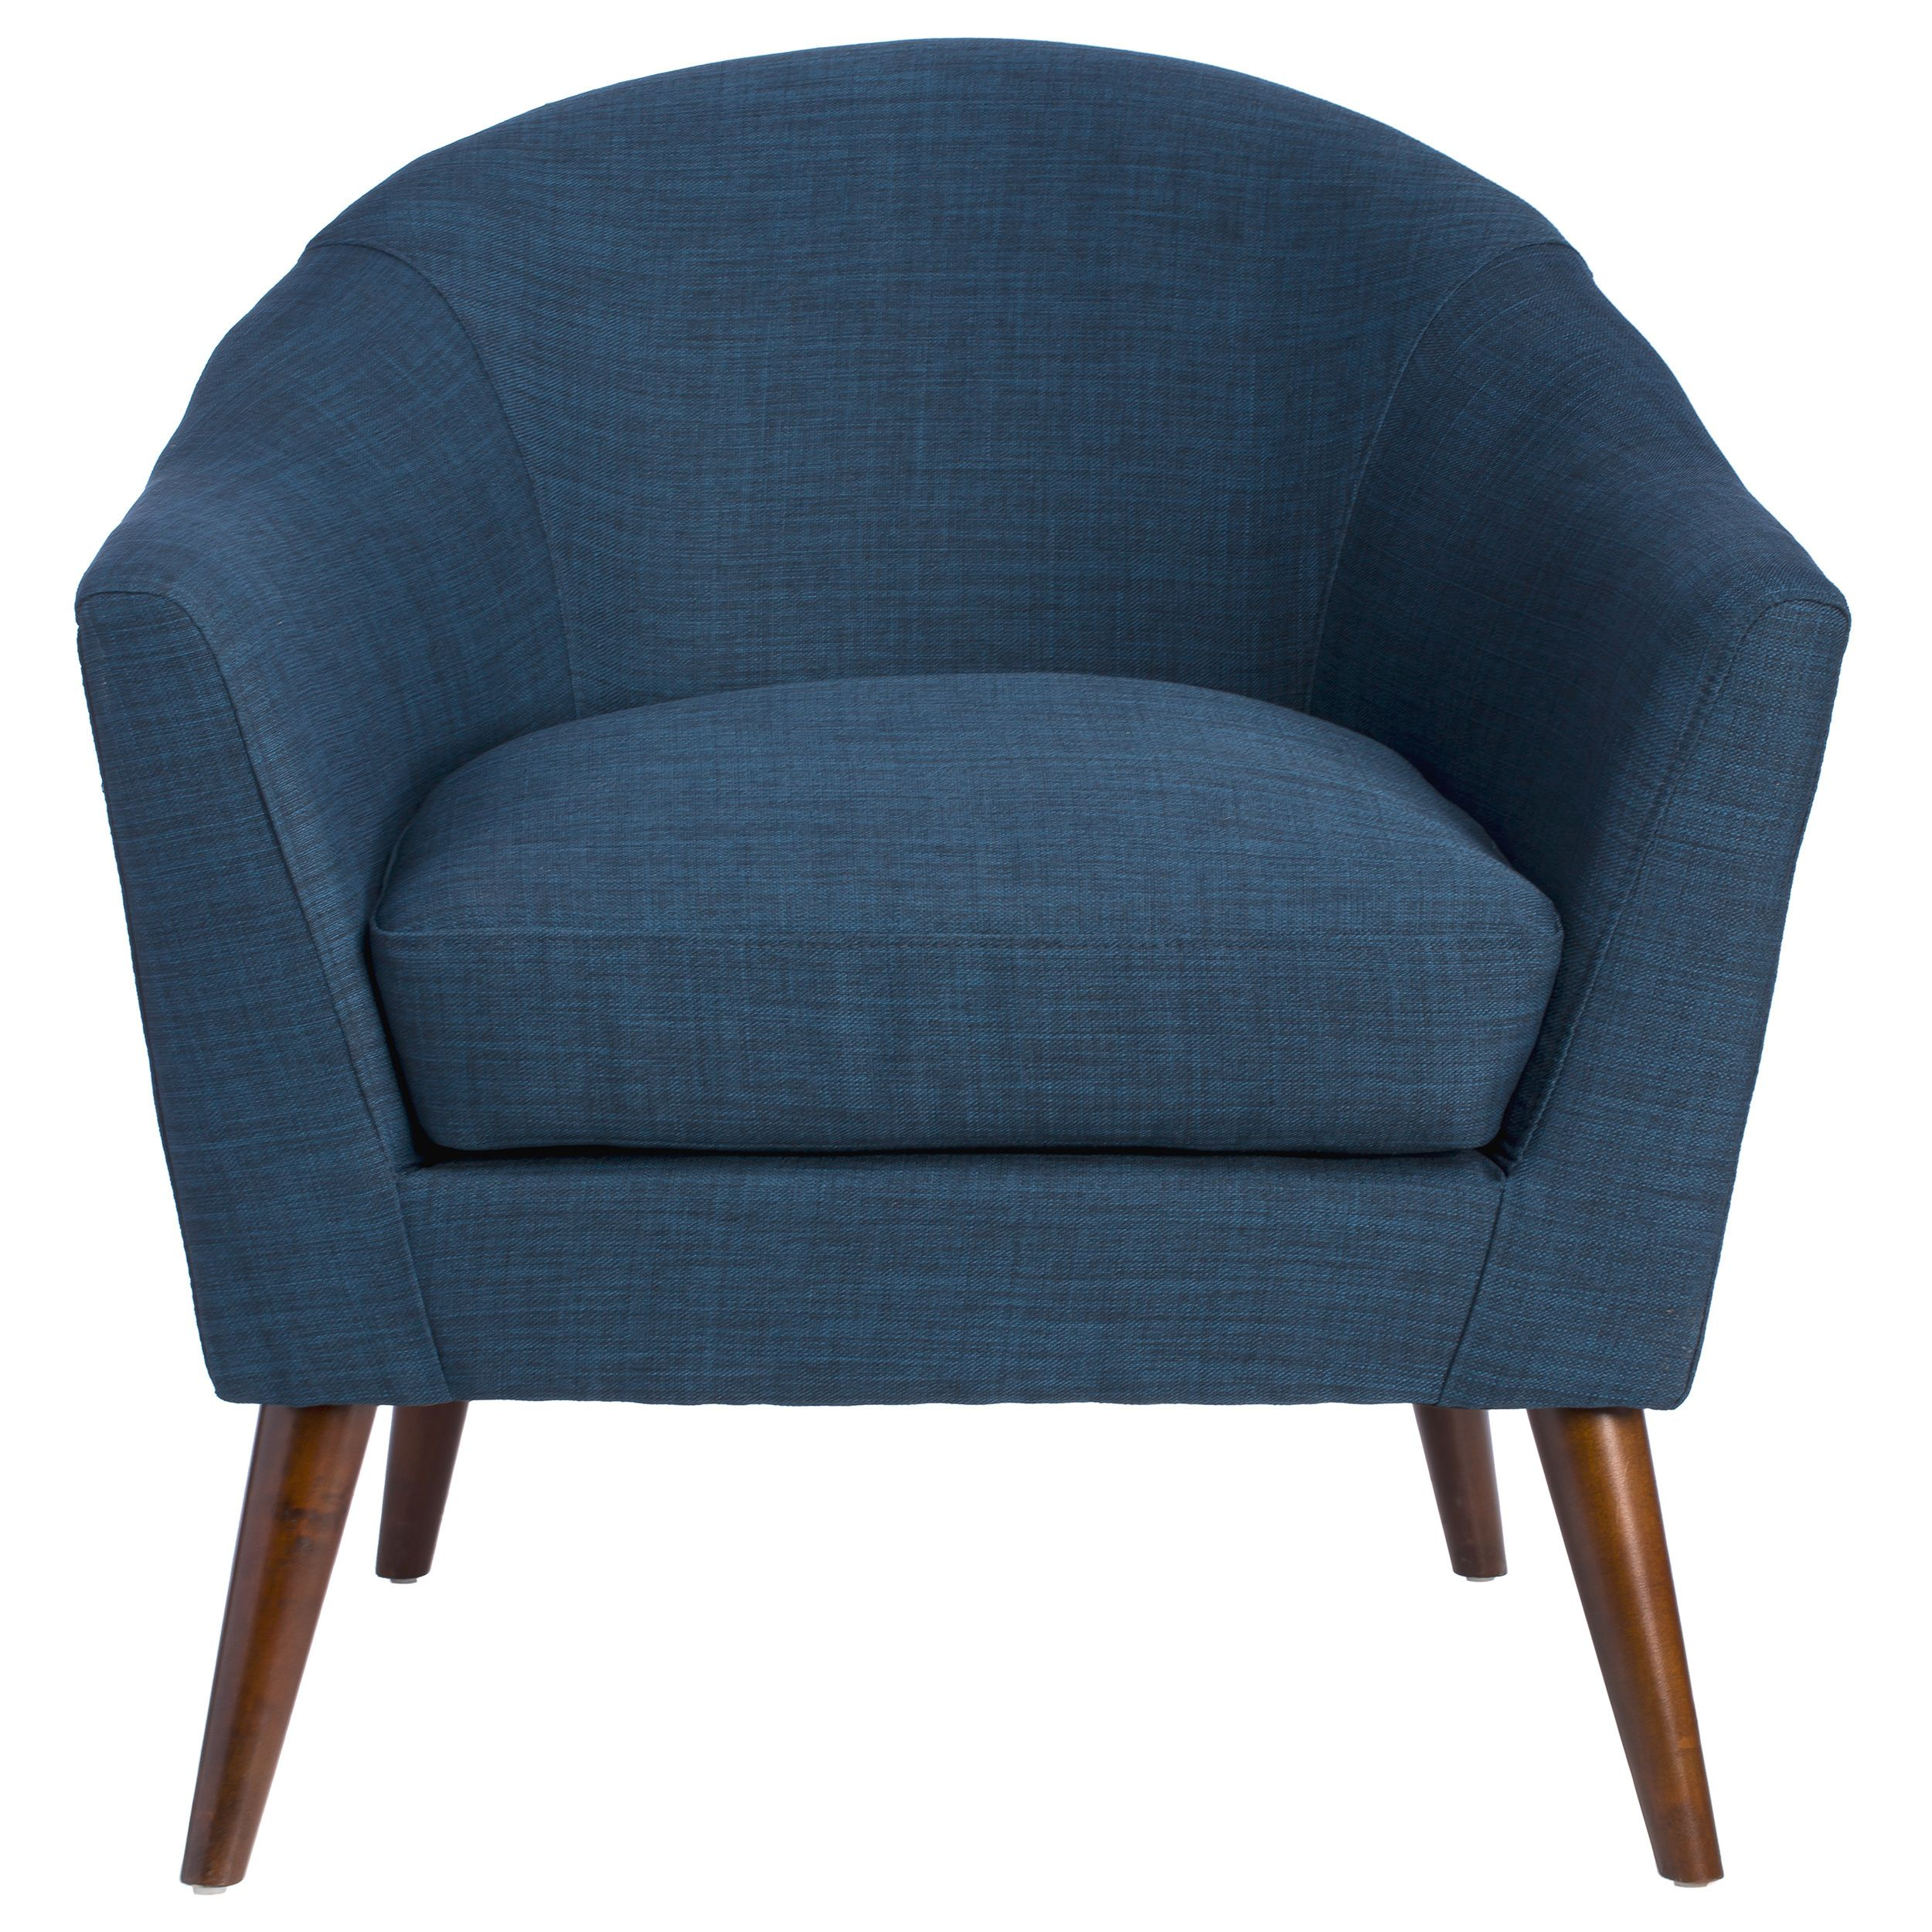 Grayson navy accent chair overstock com shopping the best deals on living room chairs